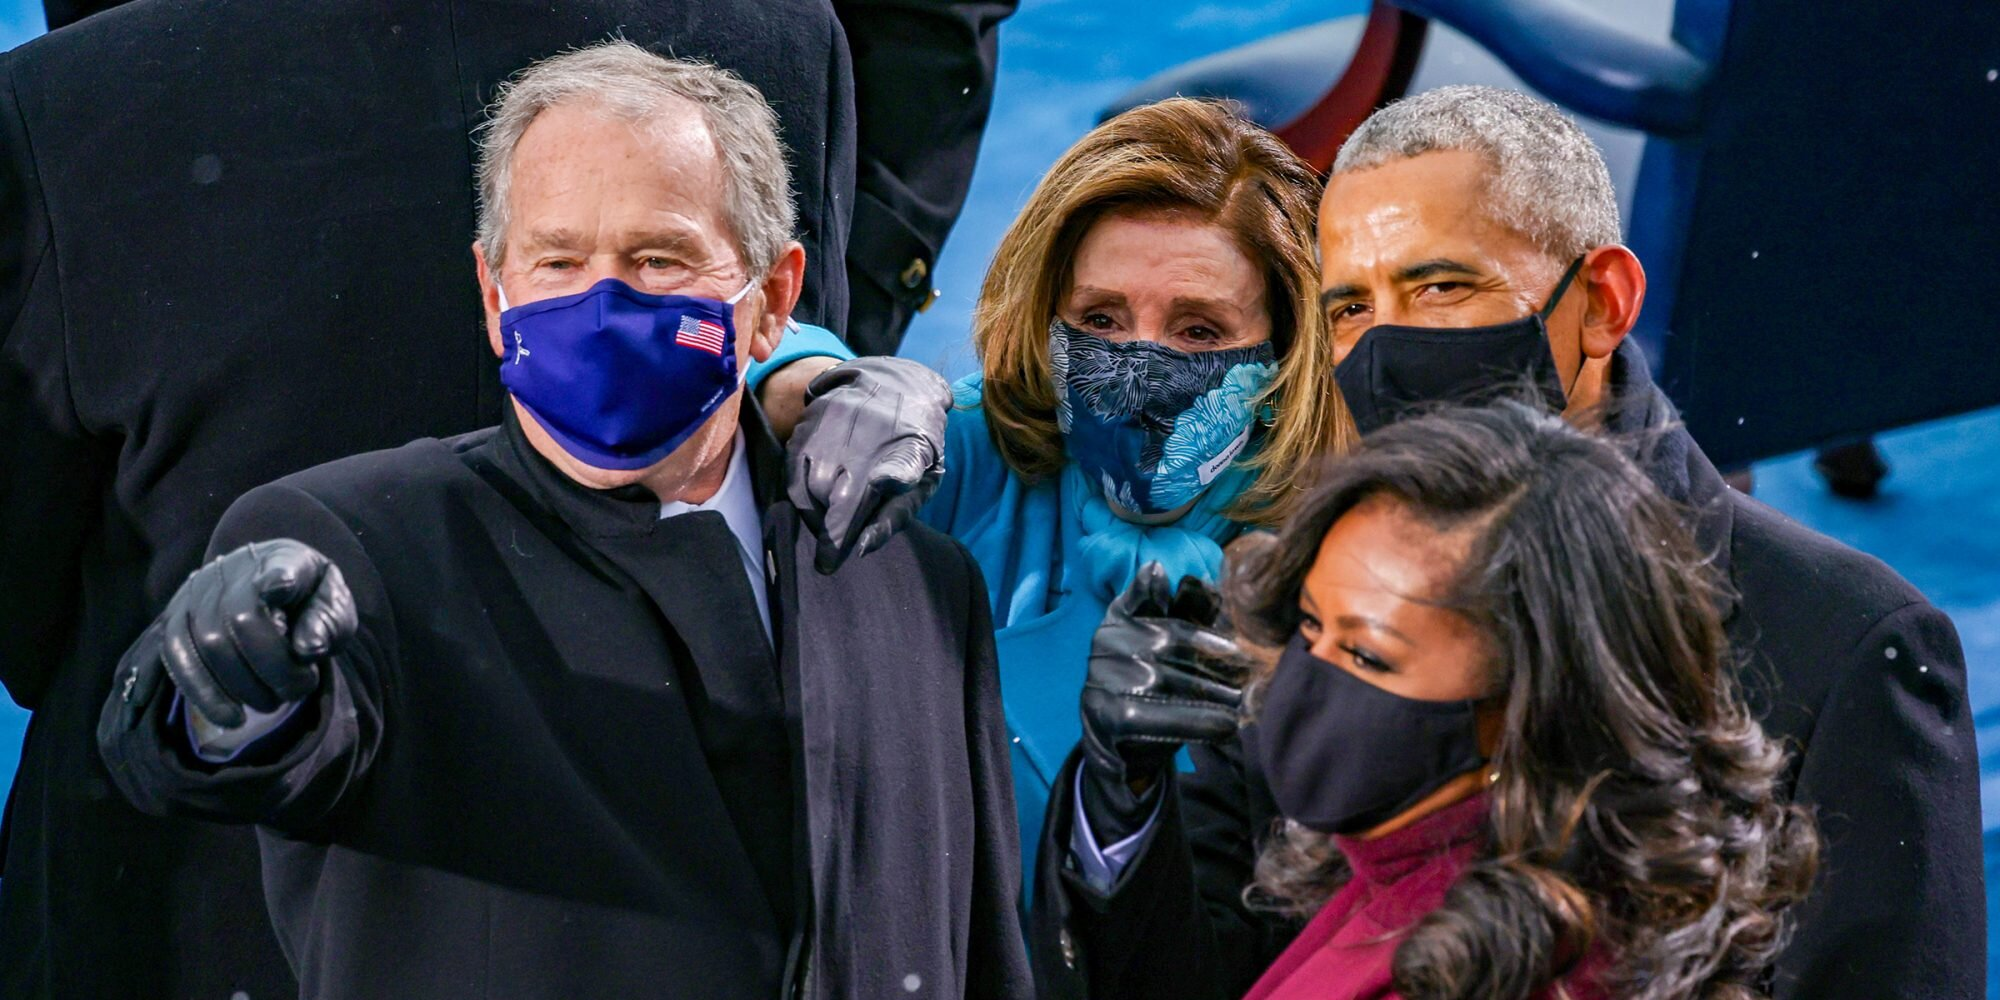 George W. Bush Told Another Inauguration Attendee Biden Was 'the Only One' Who Could Beat Donald Trump